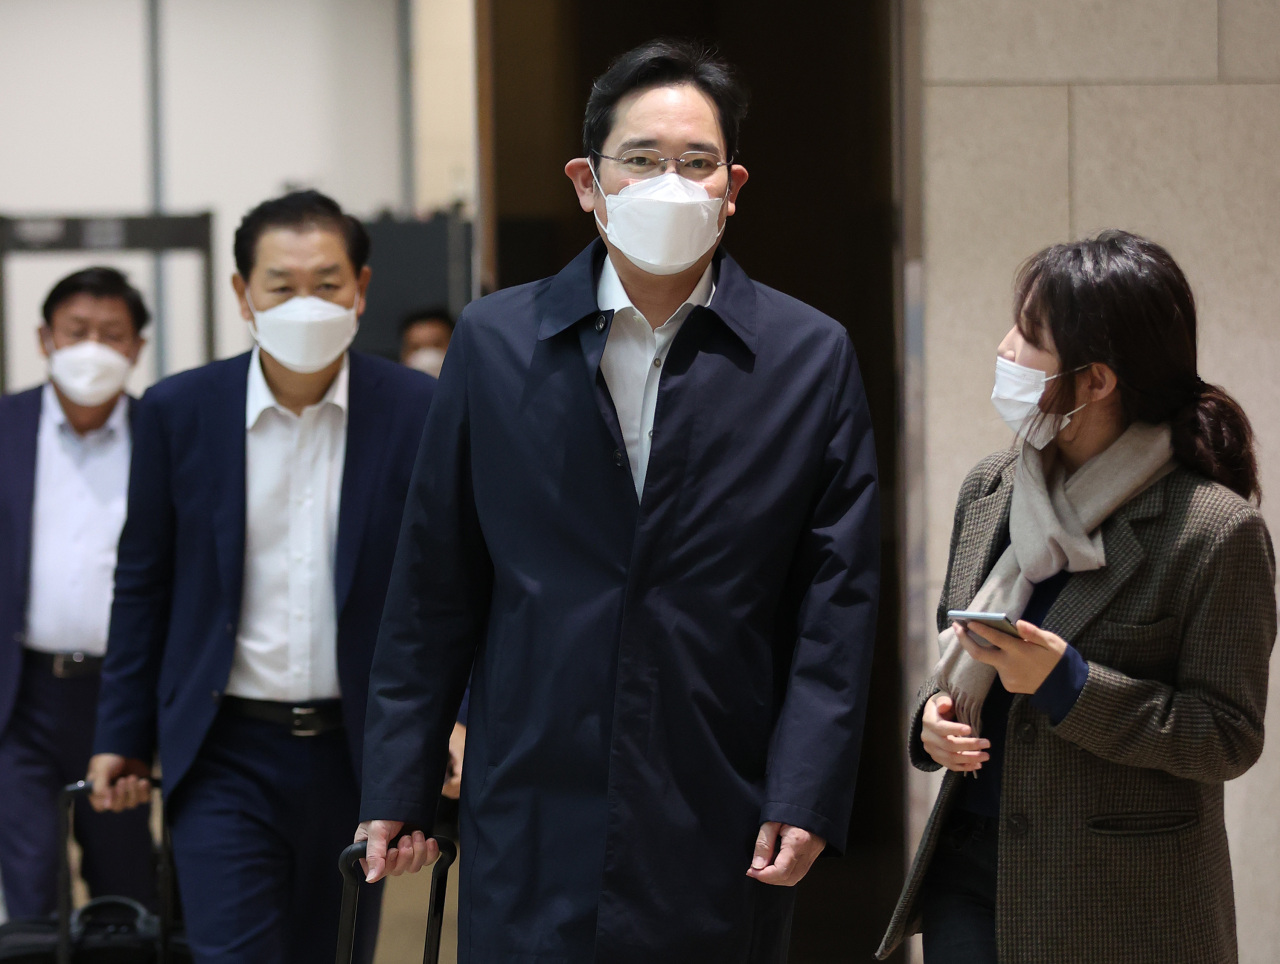 Samsung heir Lee Jae-yong arrives at the Seoul Gimpo Business Aviation Center on Friday. (Yonhap)